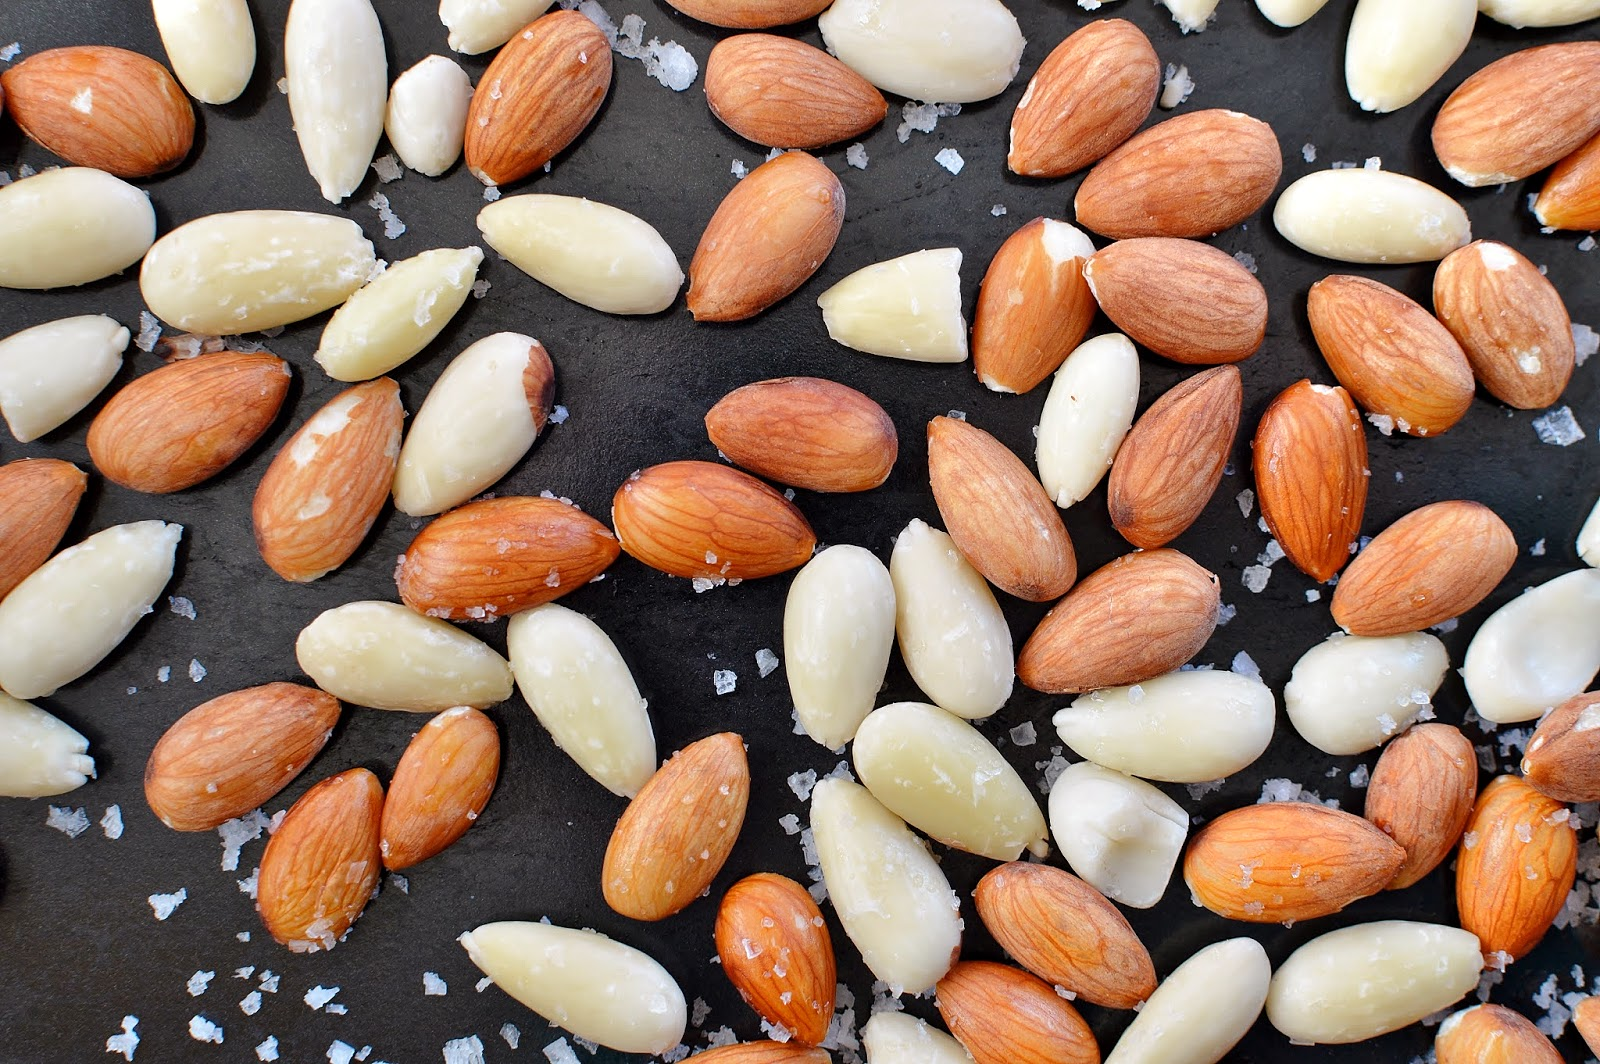 Sprinkle the almonds with sea salt before baking